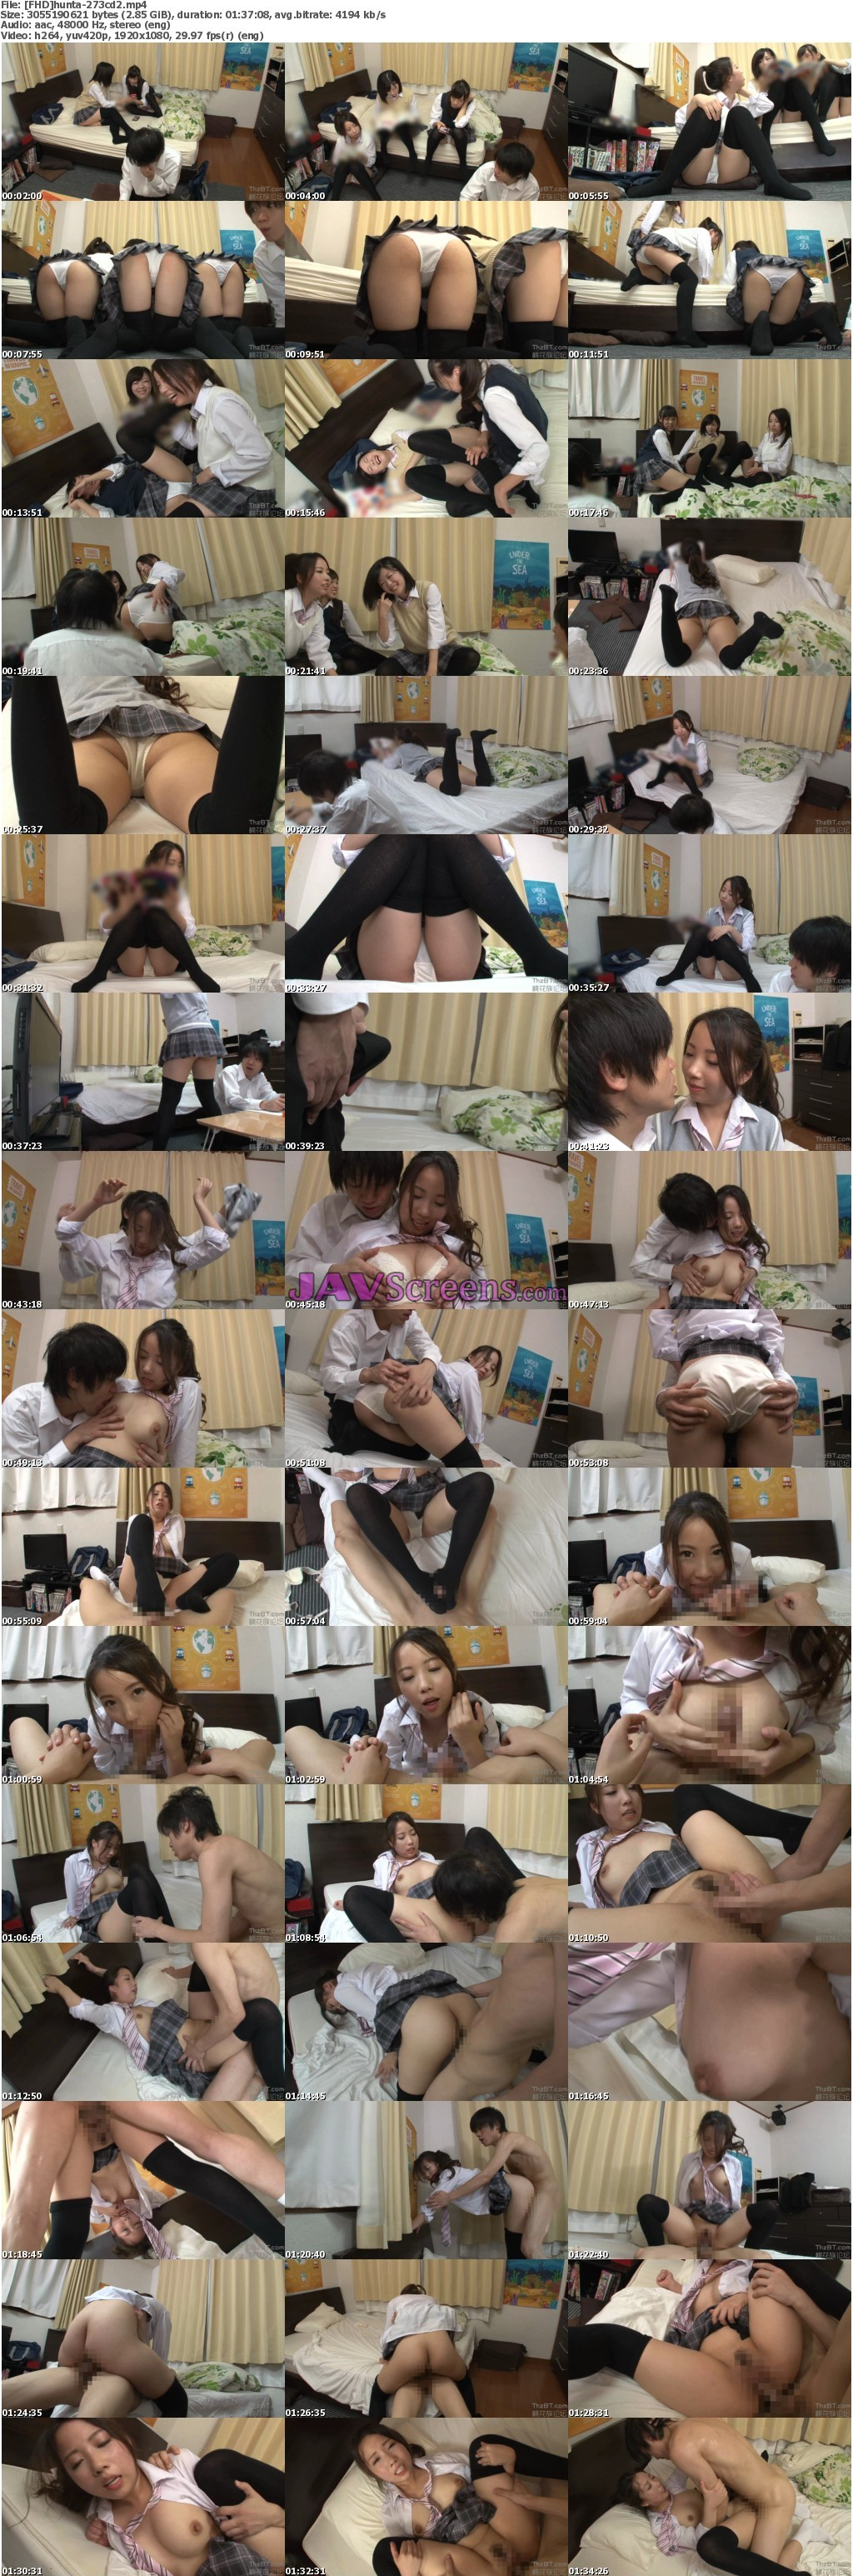 HUNTA-273B.jpg - JAV Screenshot